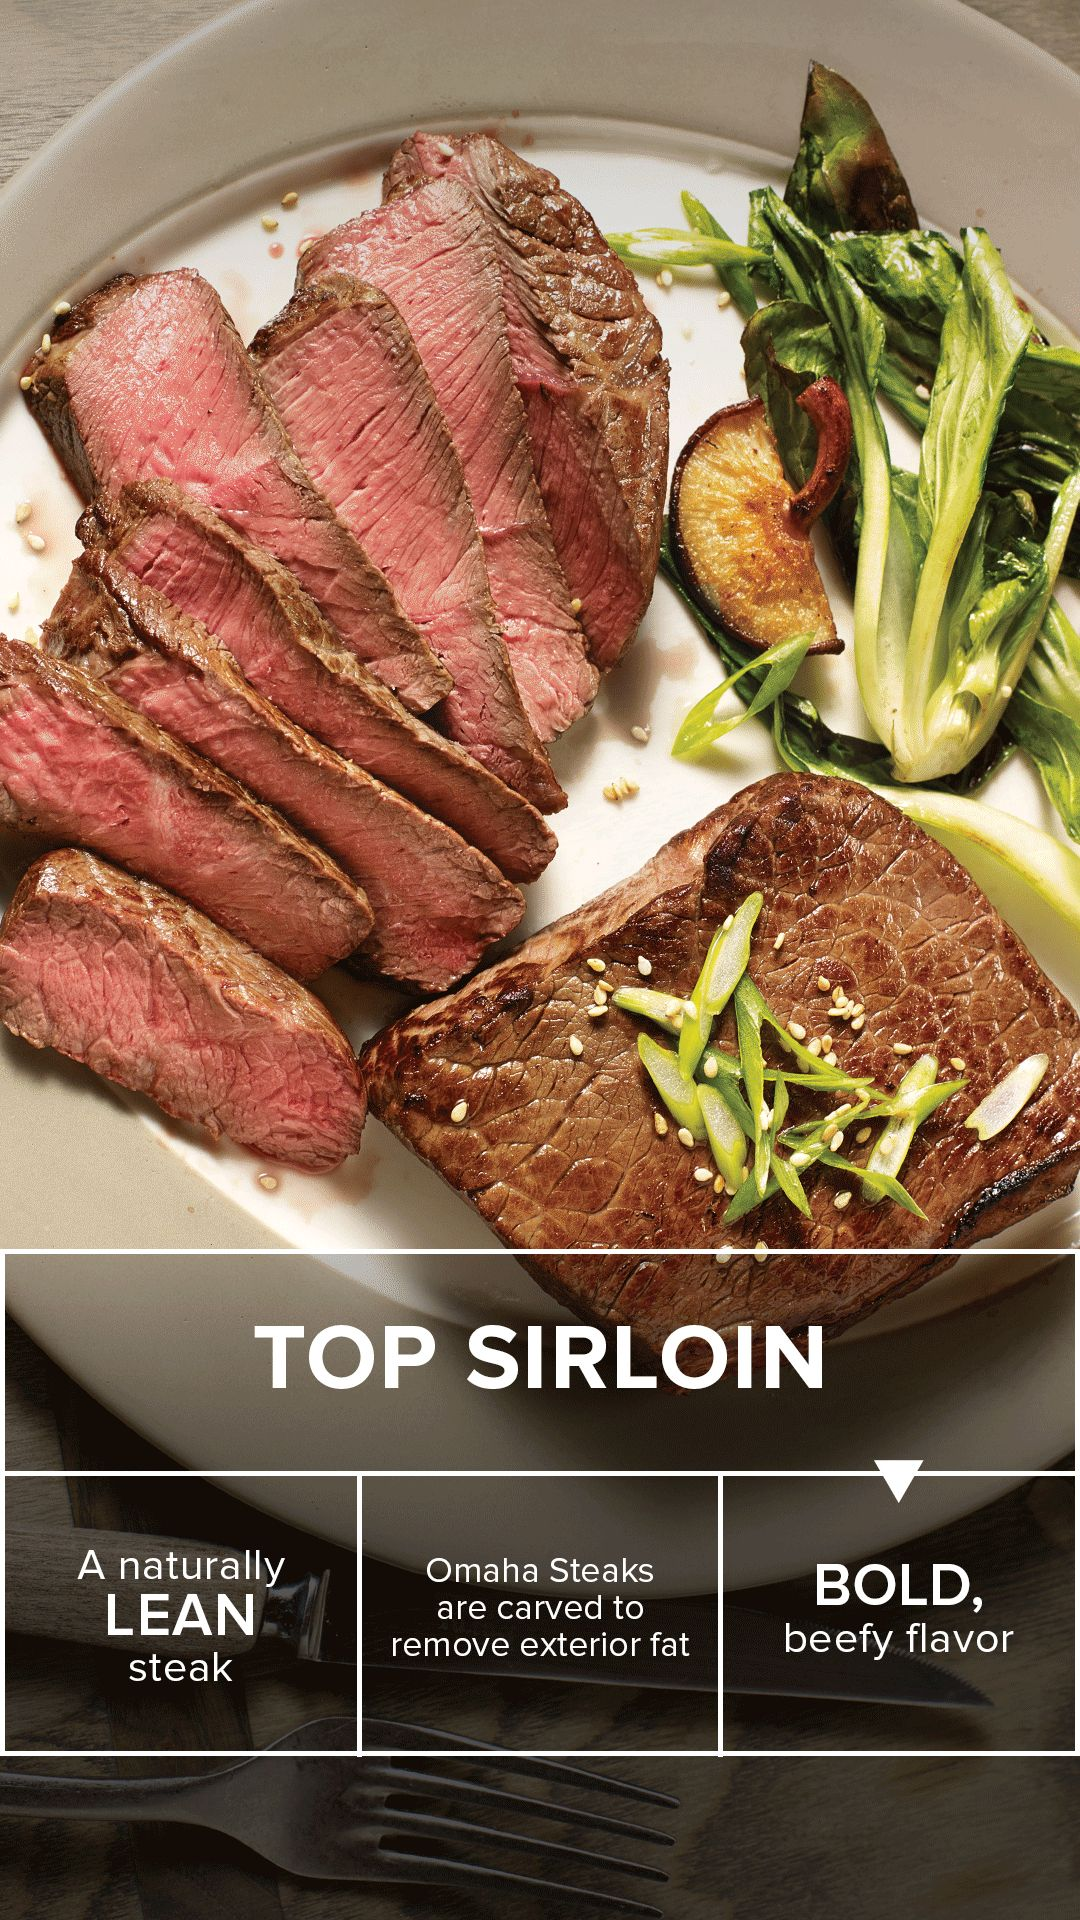 How Do You Like To Eat Top Sirloin Carved From The Center Of The